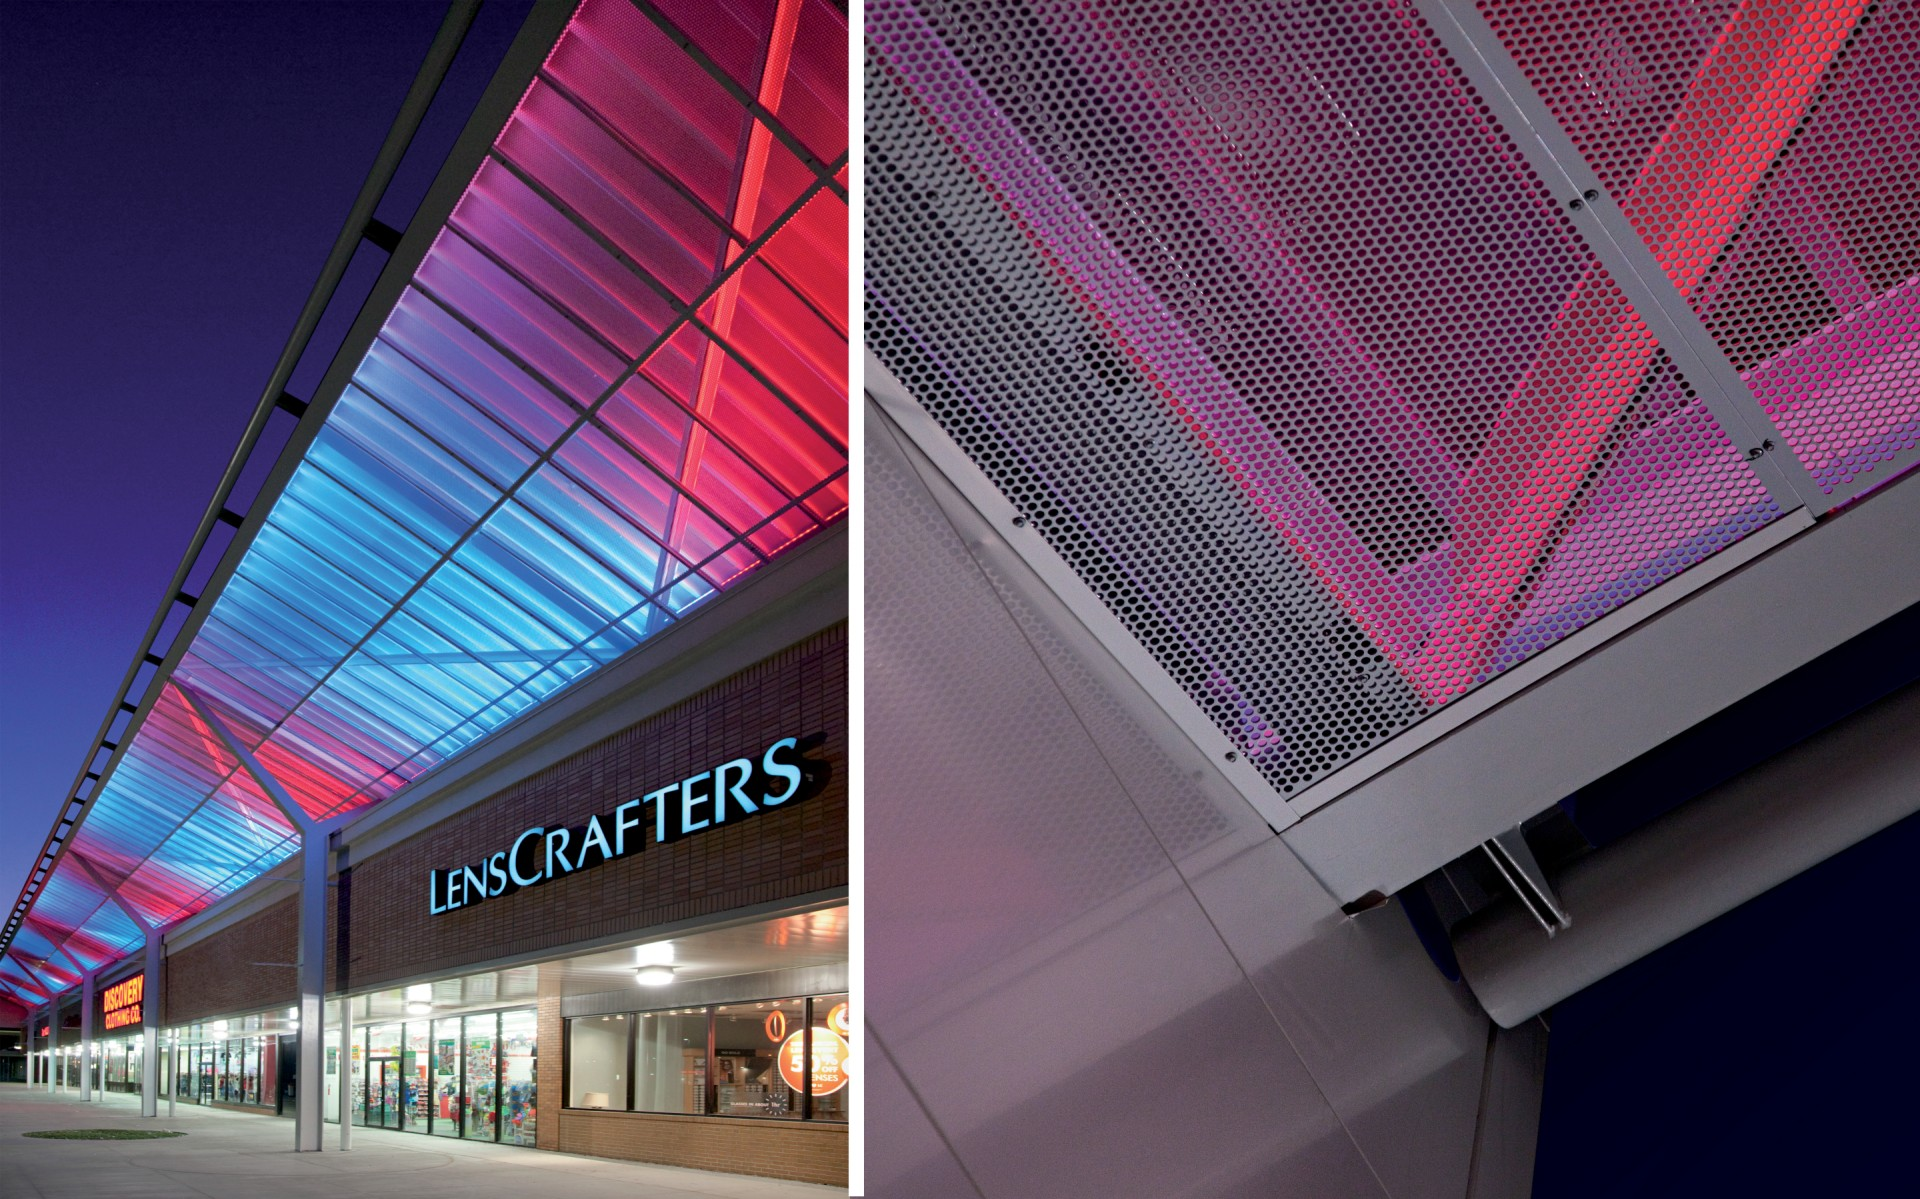 The striking effect is achieved with RGB Lumenfacades that graze the metal mesh in richly coloured light.